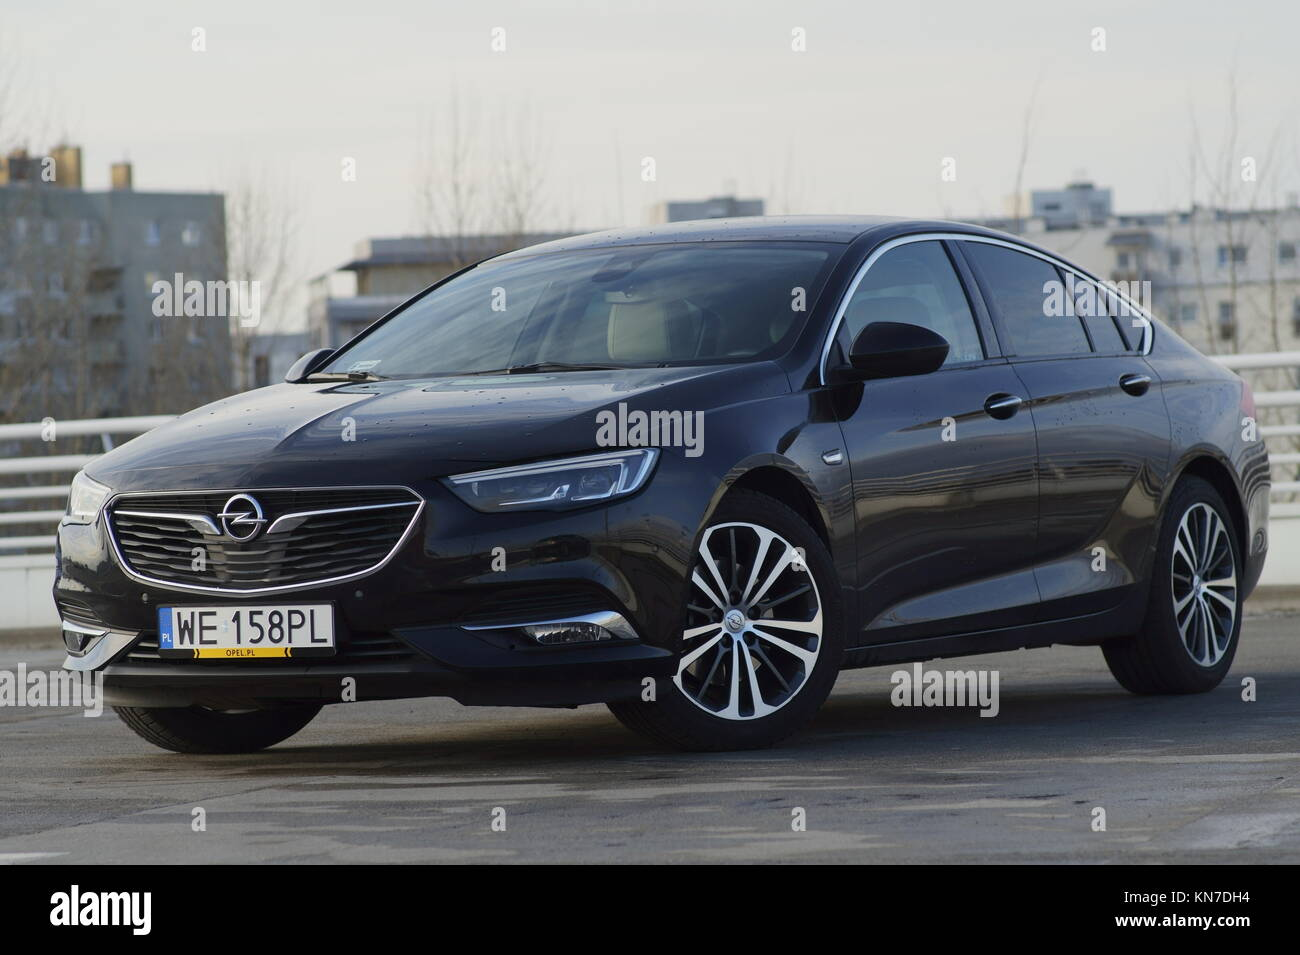 Opel Insignia 2017 High Resolution Stock Photography And Images Alamy